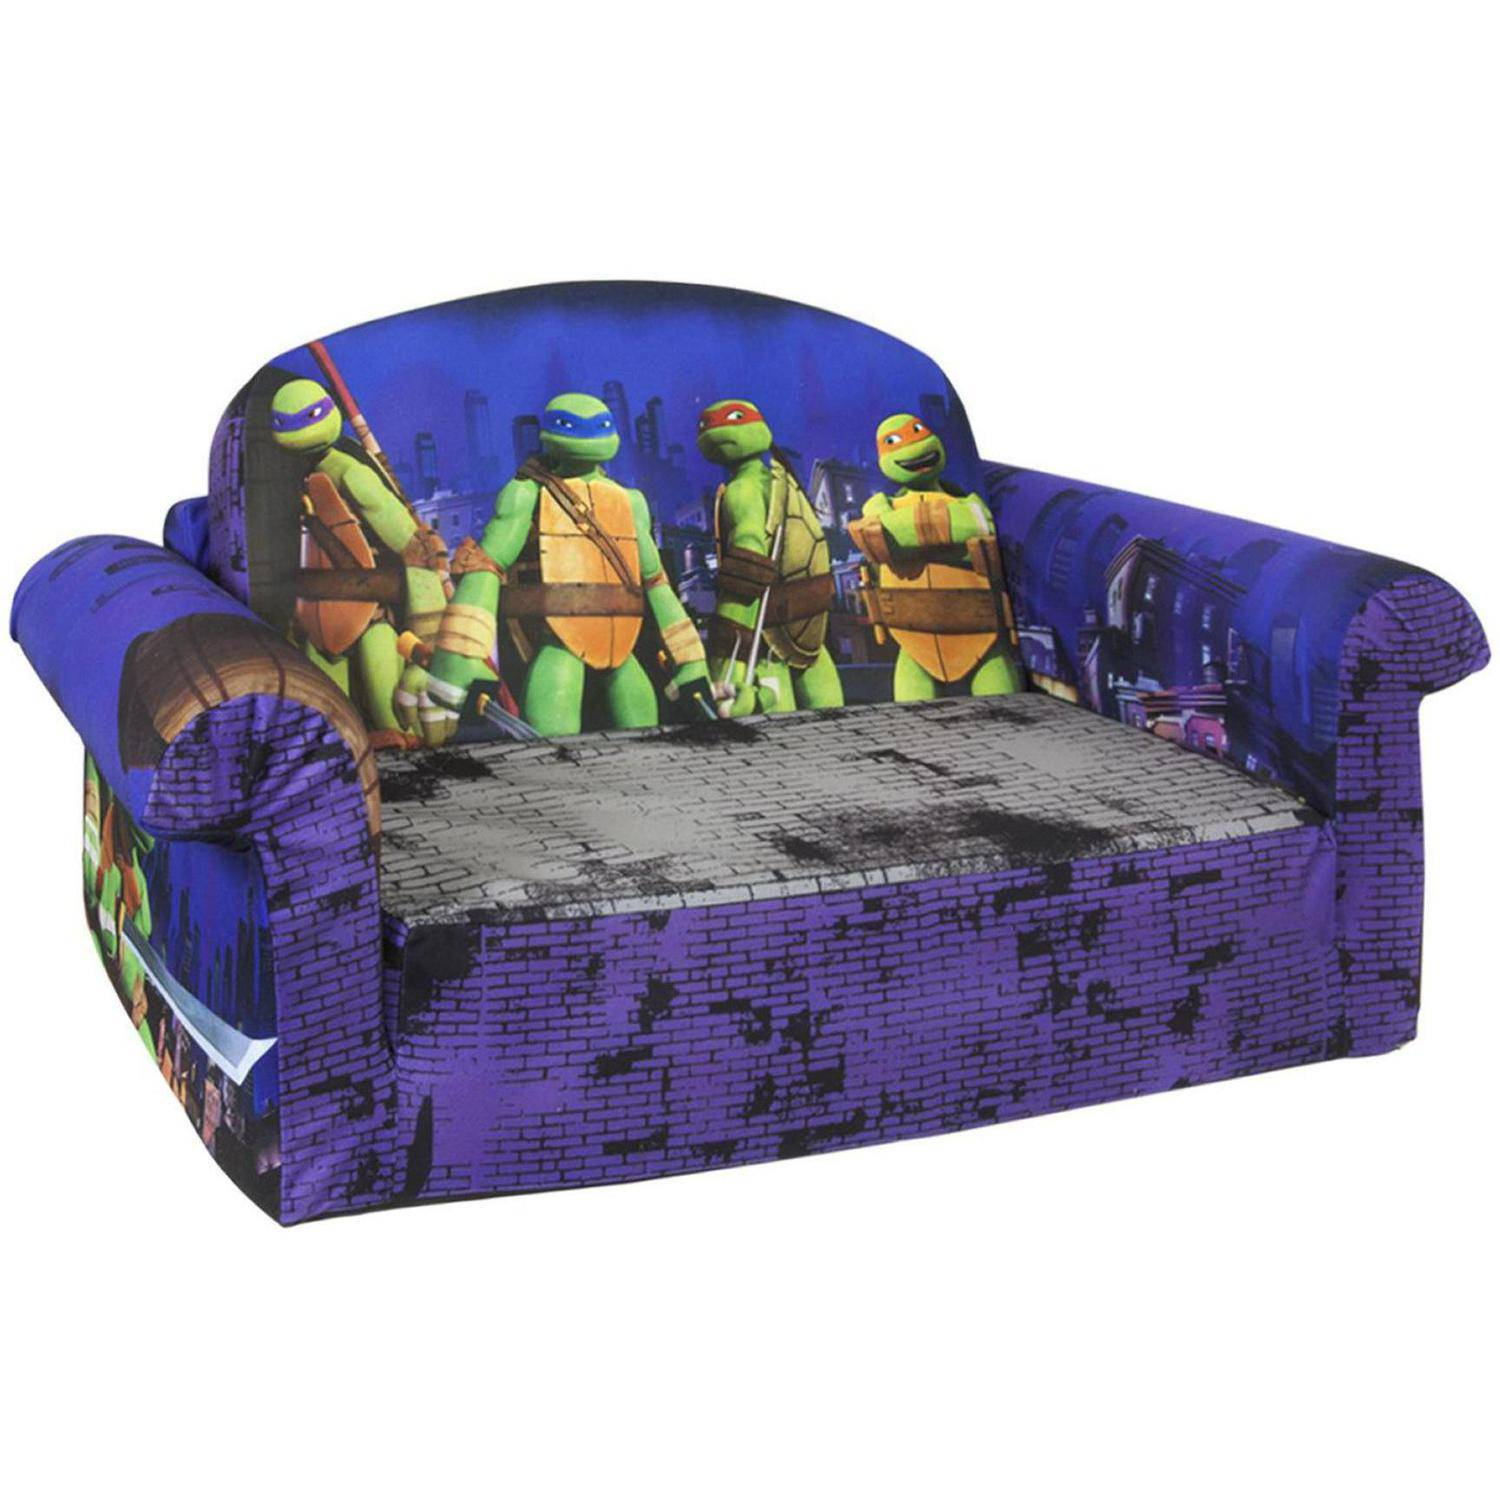 Marshmallow 2 In 1 Flip Open Sofa, Teenage Mutant Ninja Turtles